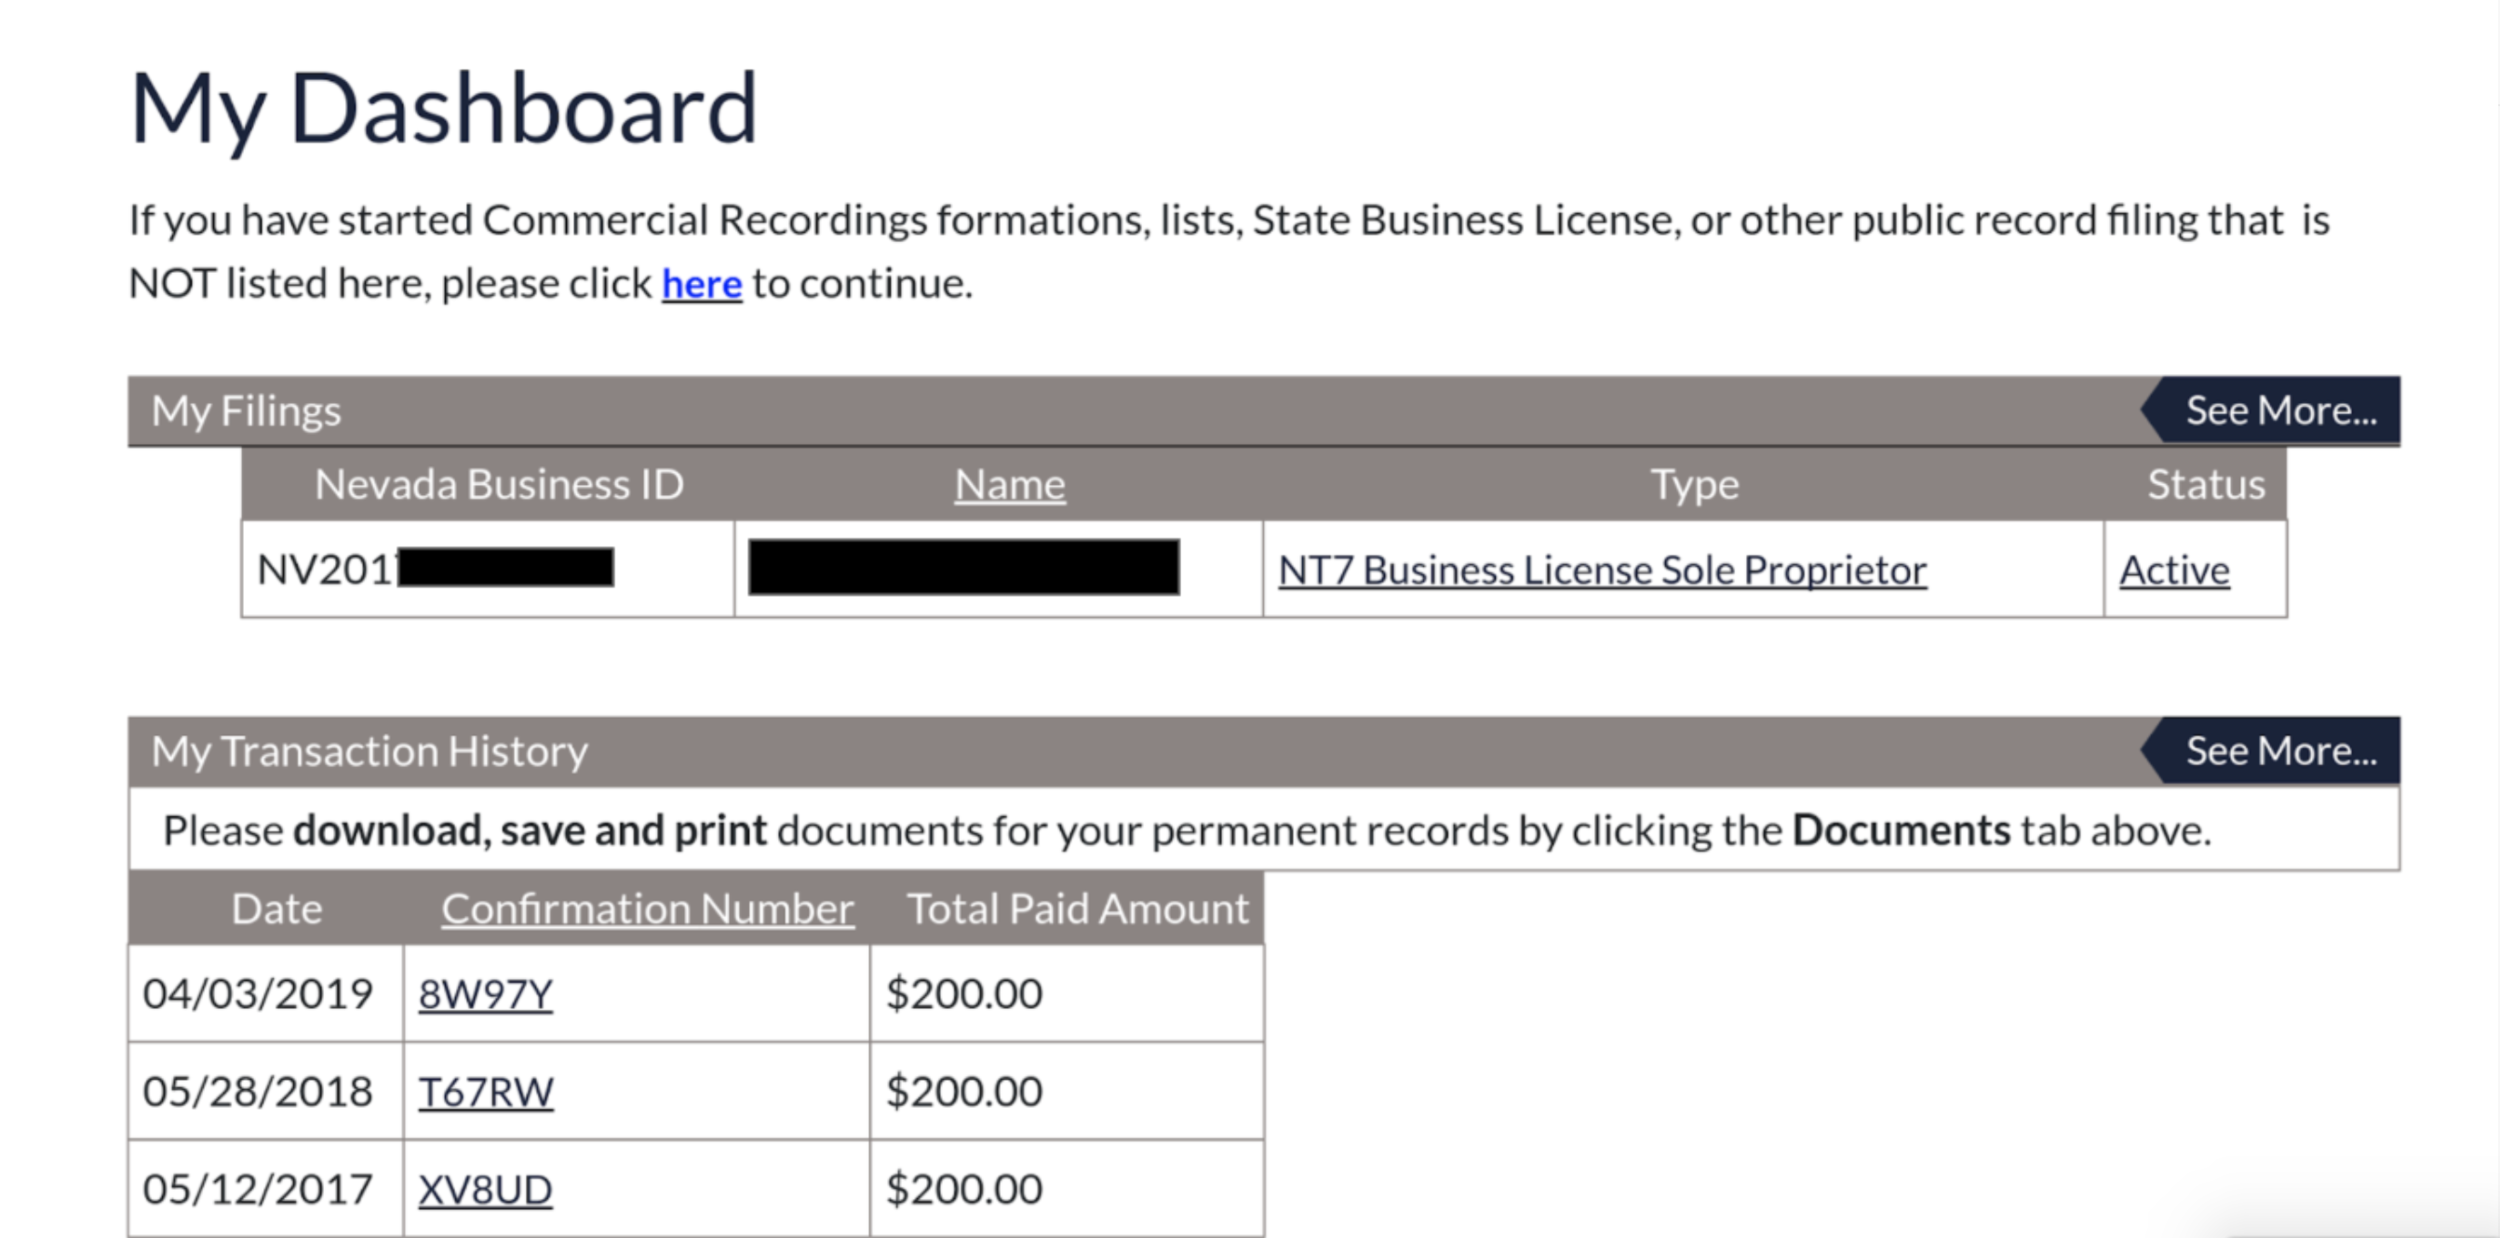 Dashboard - To view your active business licenses, navigate to your dashboard.